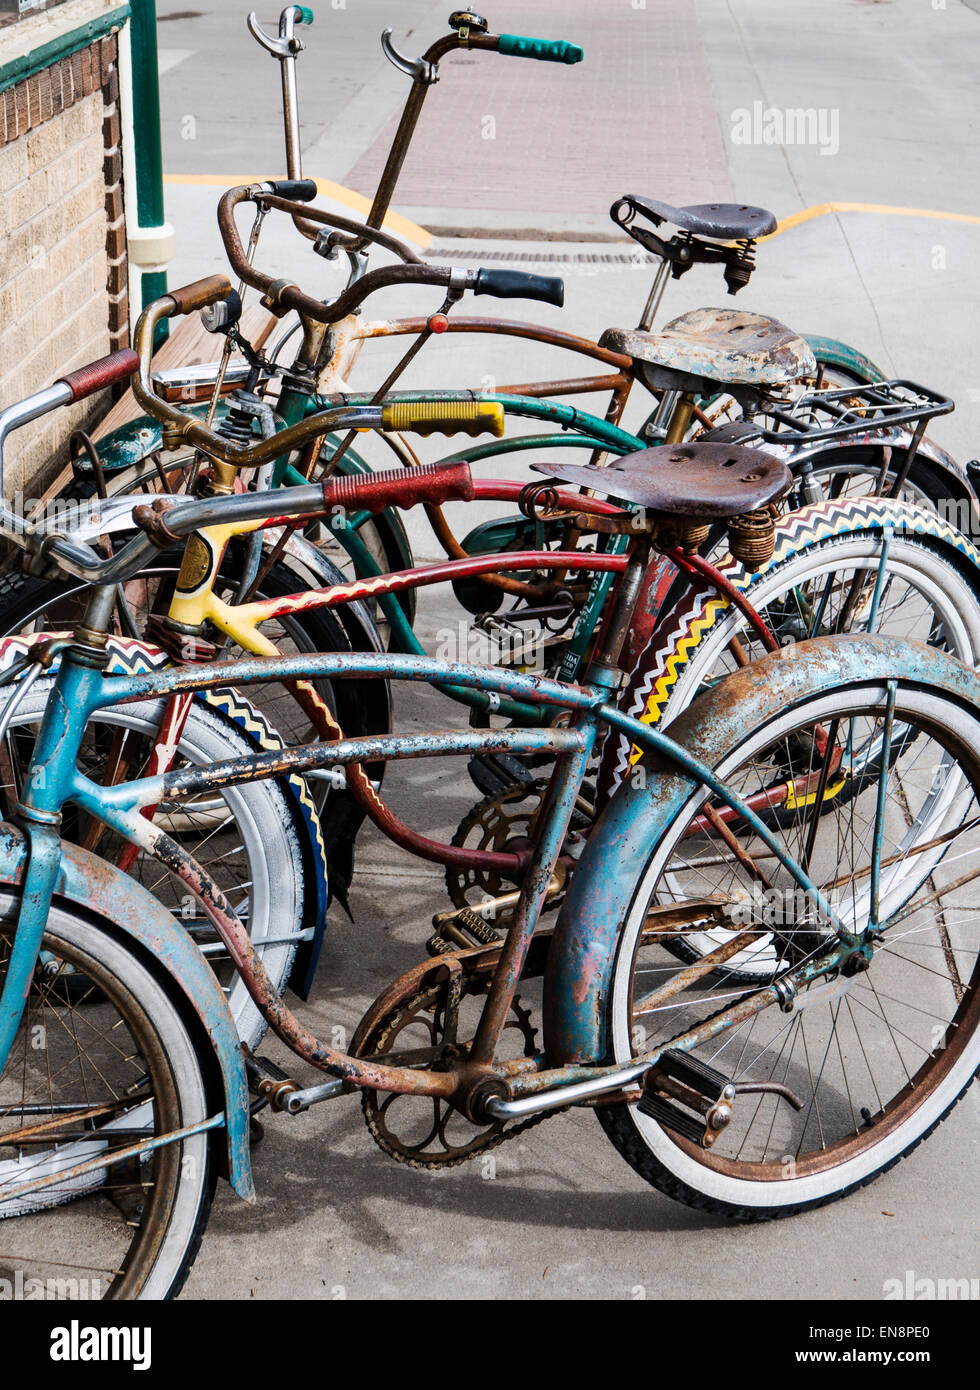 Old antique bicycles parked outside Salida Bike Company, downtown historic Salida, Colorado, USA - Stock Image